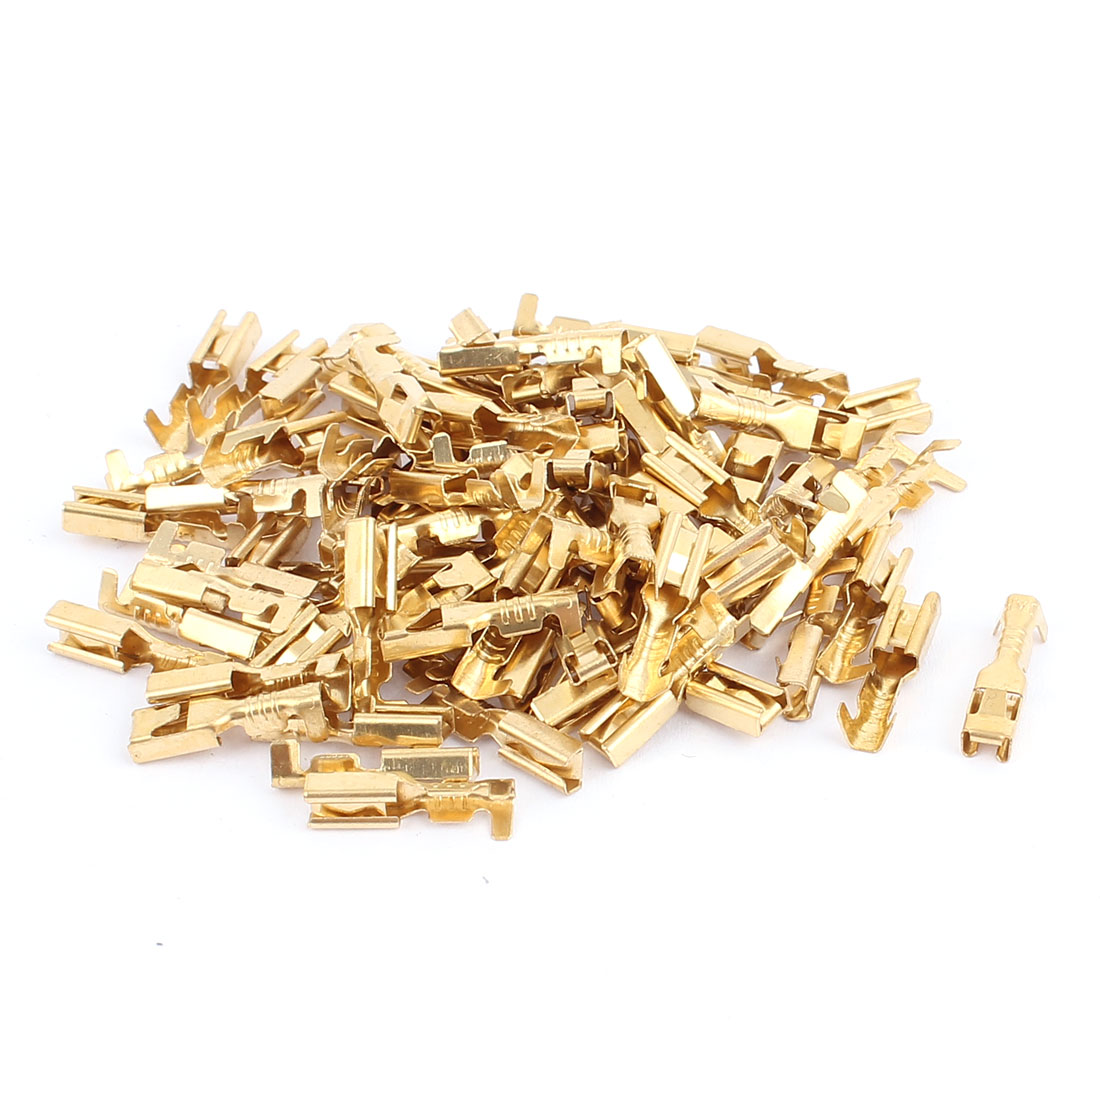 80 Pcs Gold Tone 15mm Length Female Spade Crimp Terminal Connectors